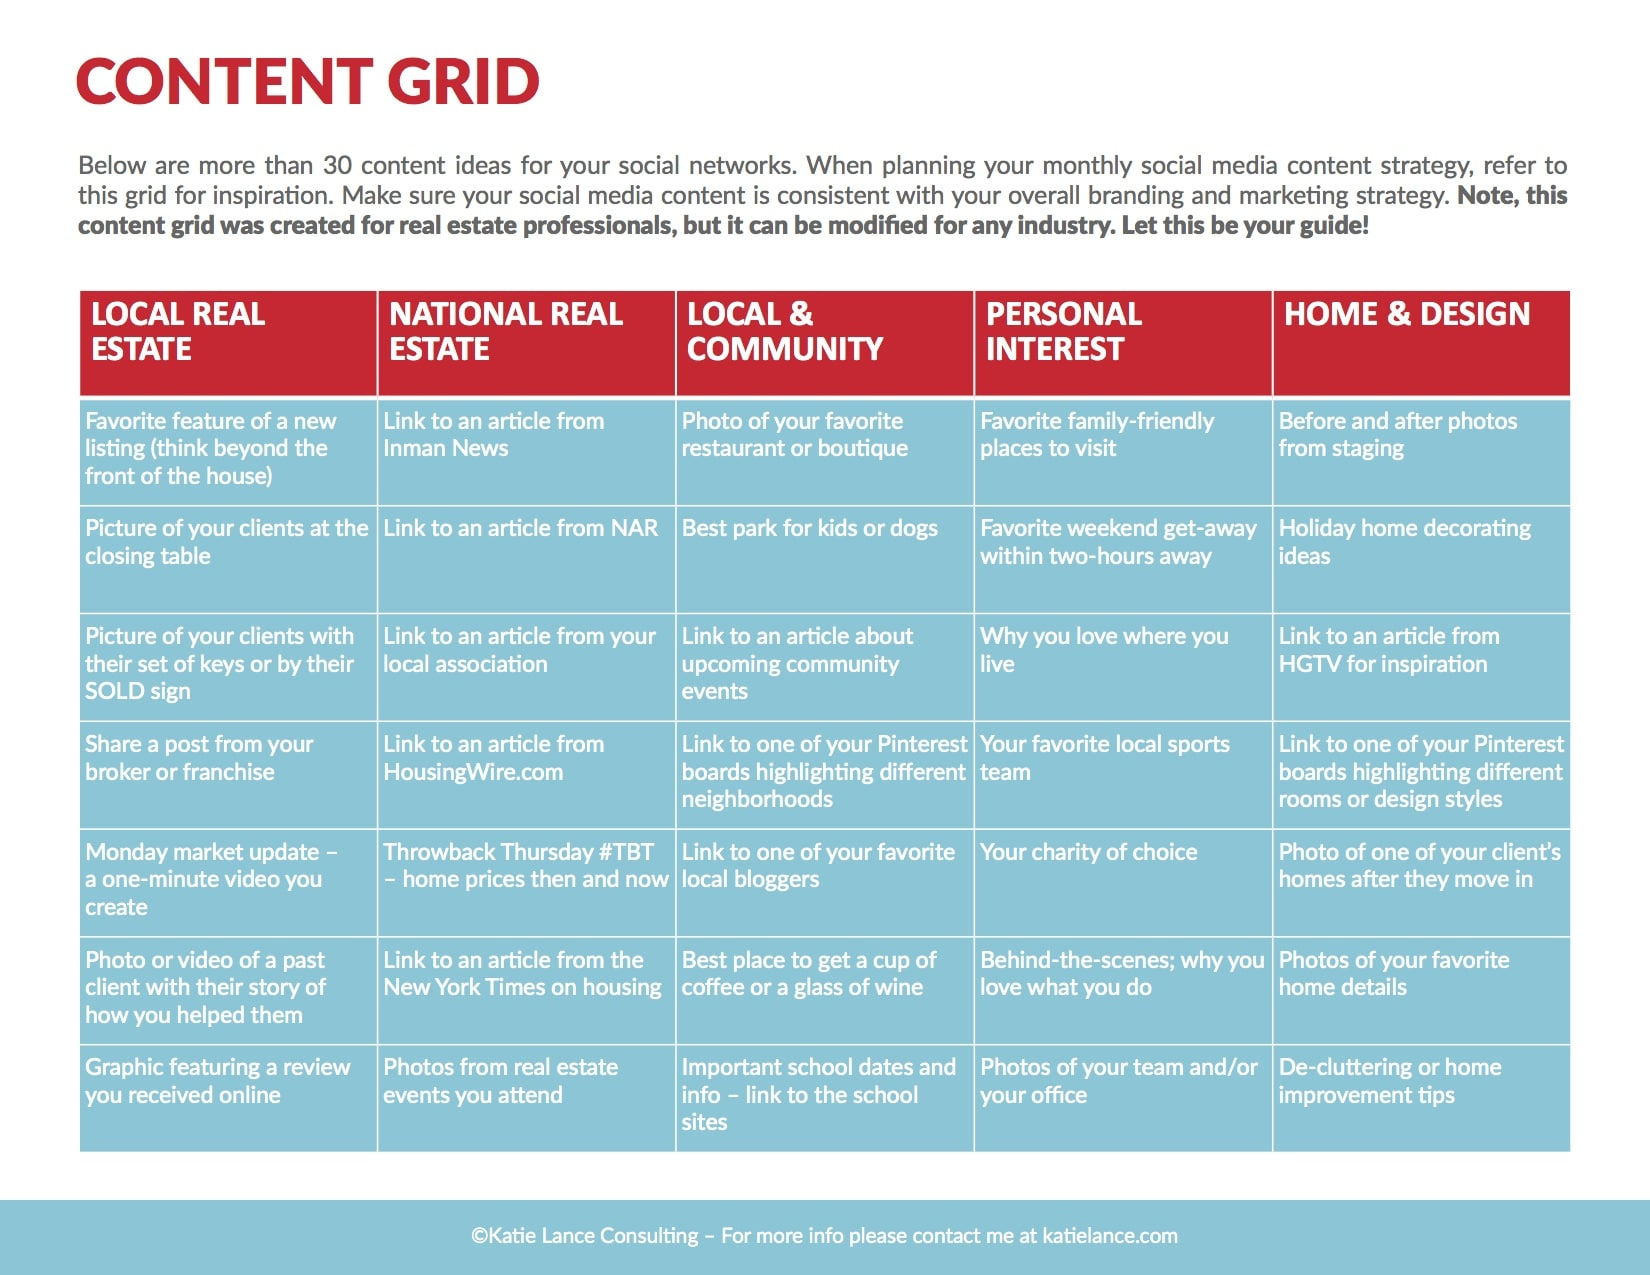 katielanceconsulting_content_grid_2016